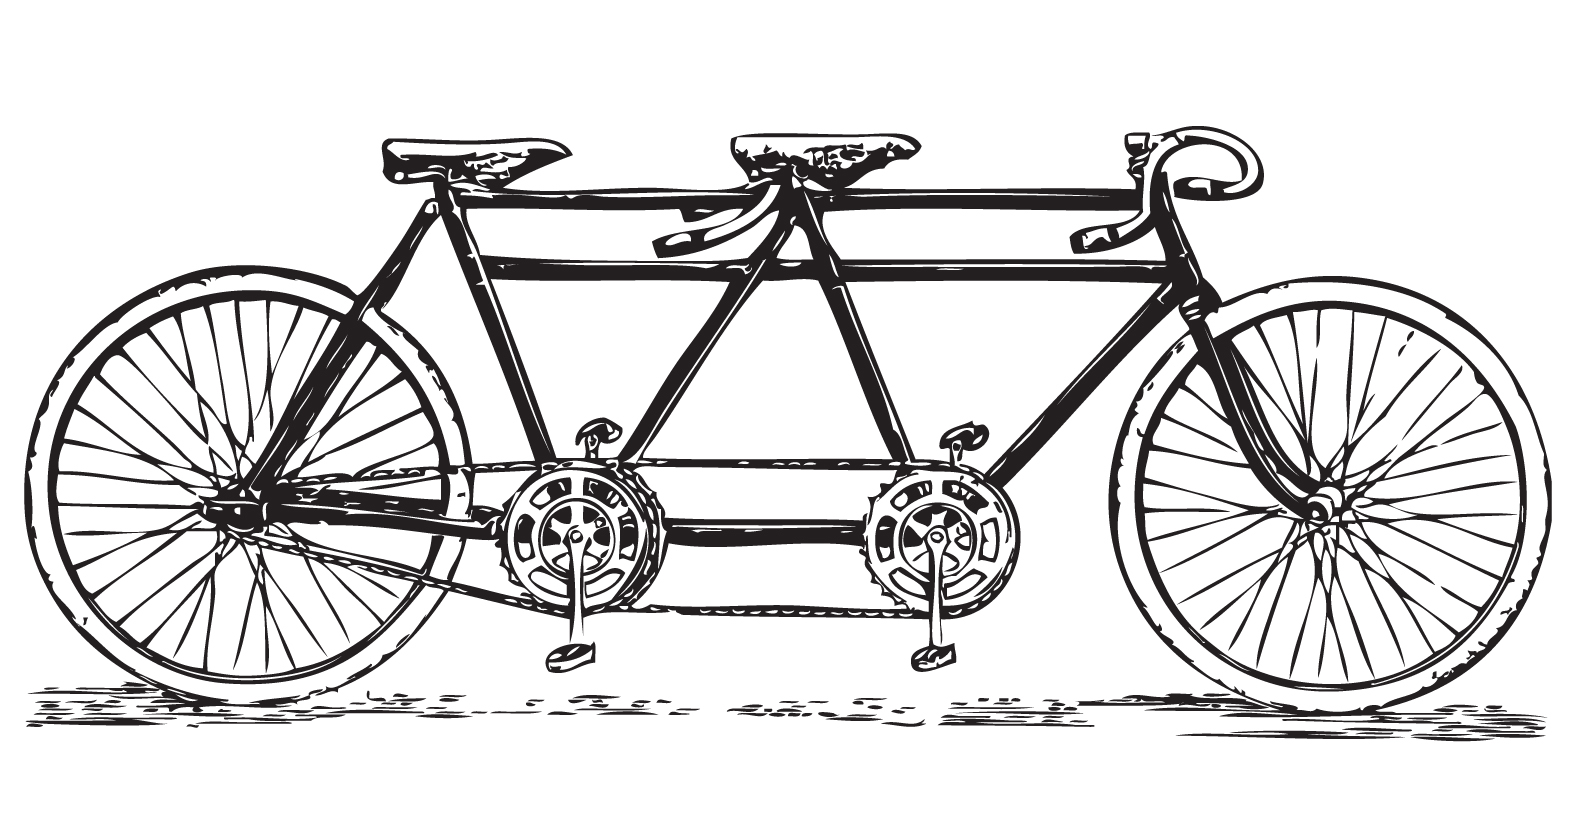 Bicycle clipart retro bike Tandem images: art Free art